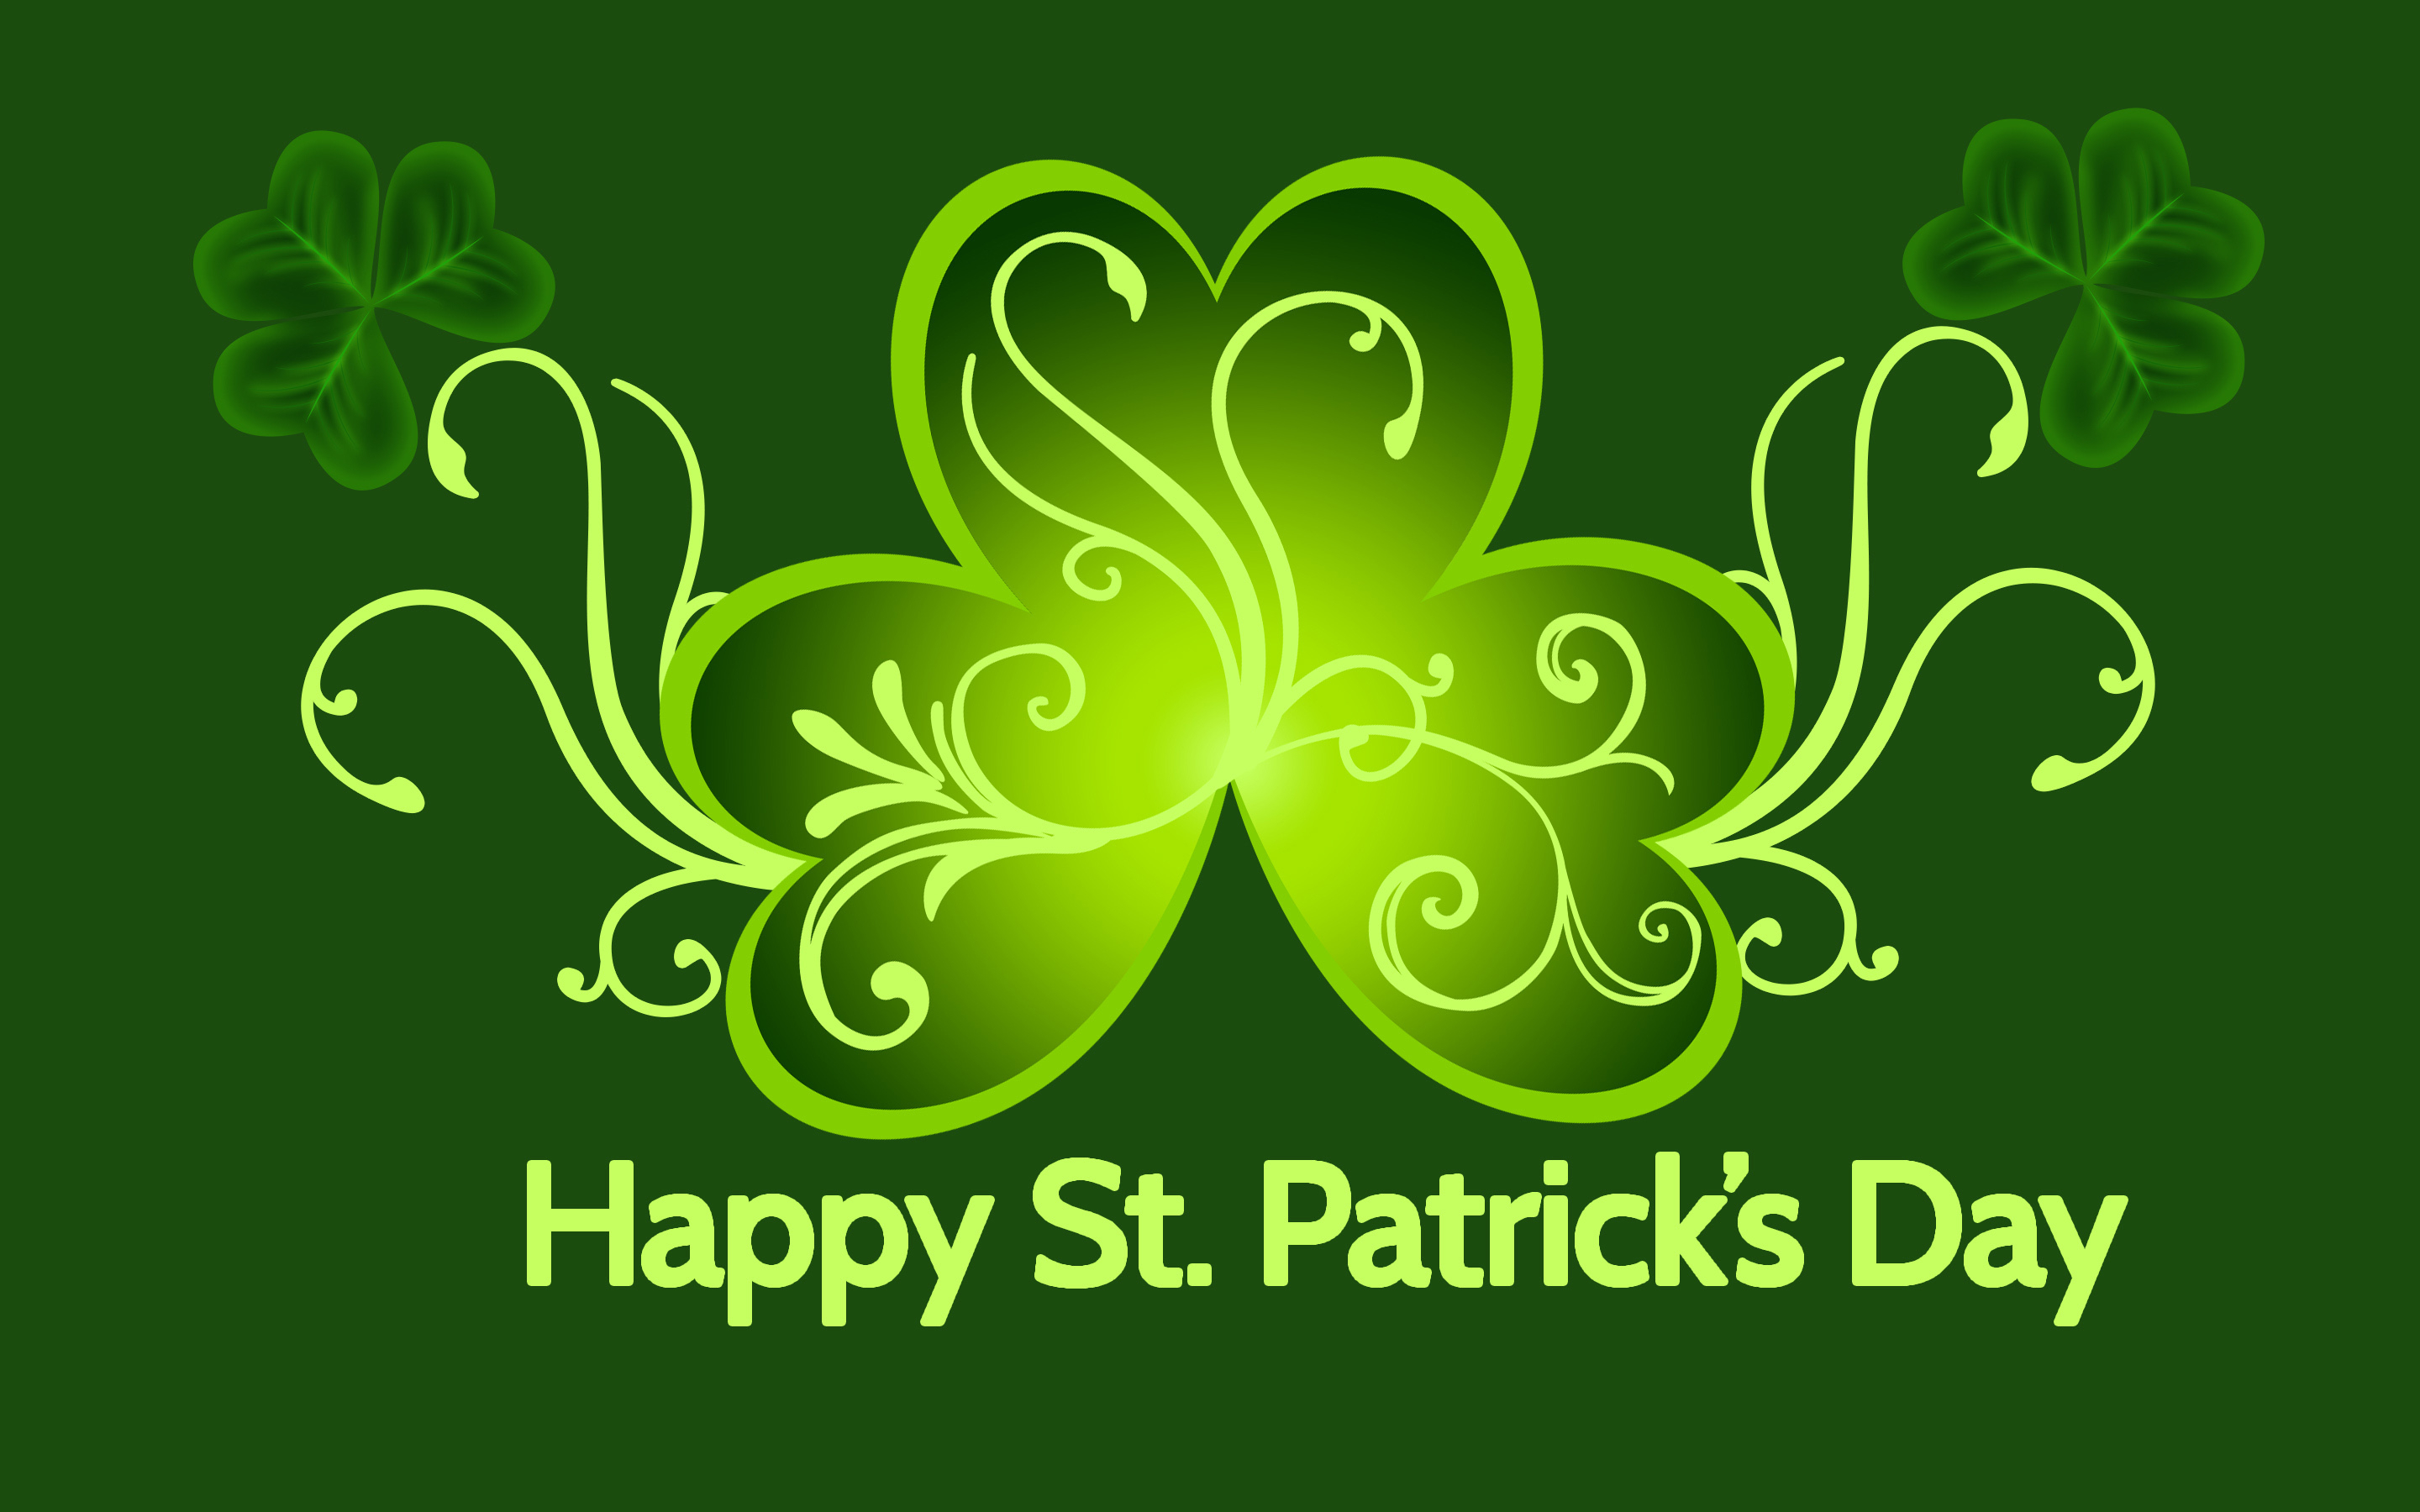 87 st. patrick's day hd wallpapers | background images - wallpaper abyss